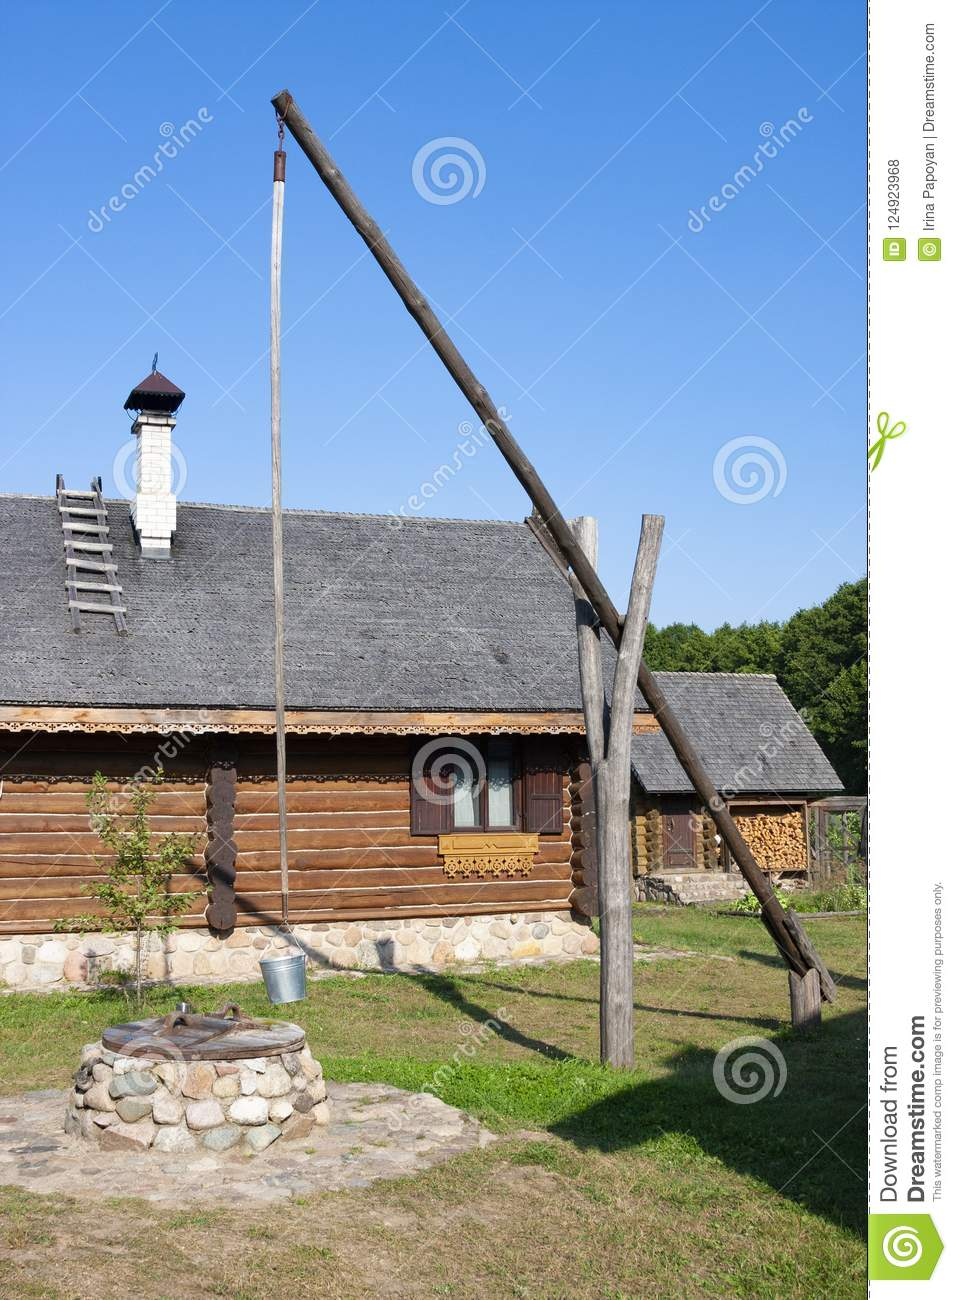 Traditional Belarusian well in ethnocultural complex Nanosy-Novoselye. It is historical recreat